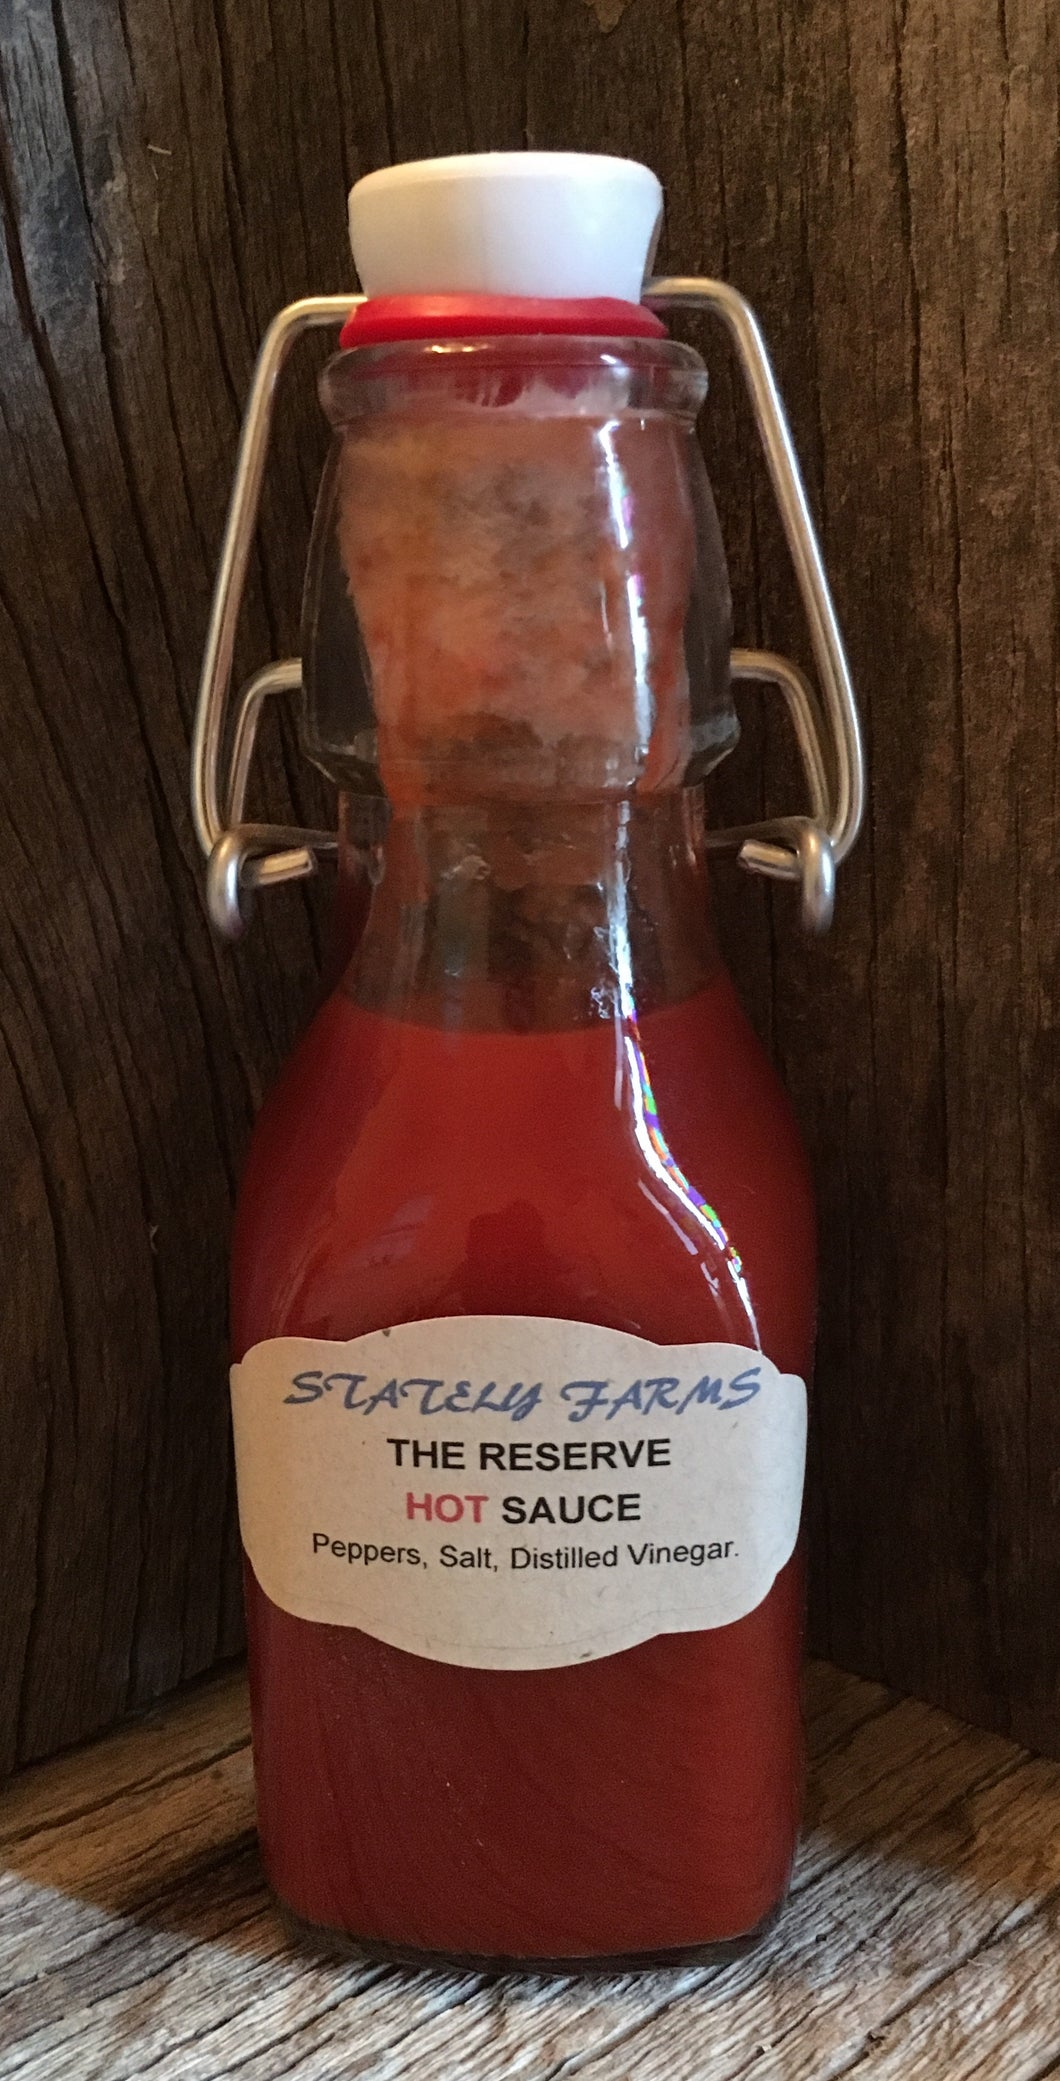 The Reserve Hot Sauce